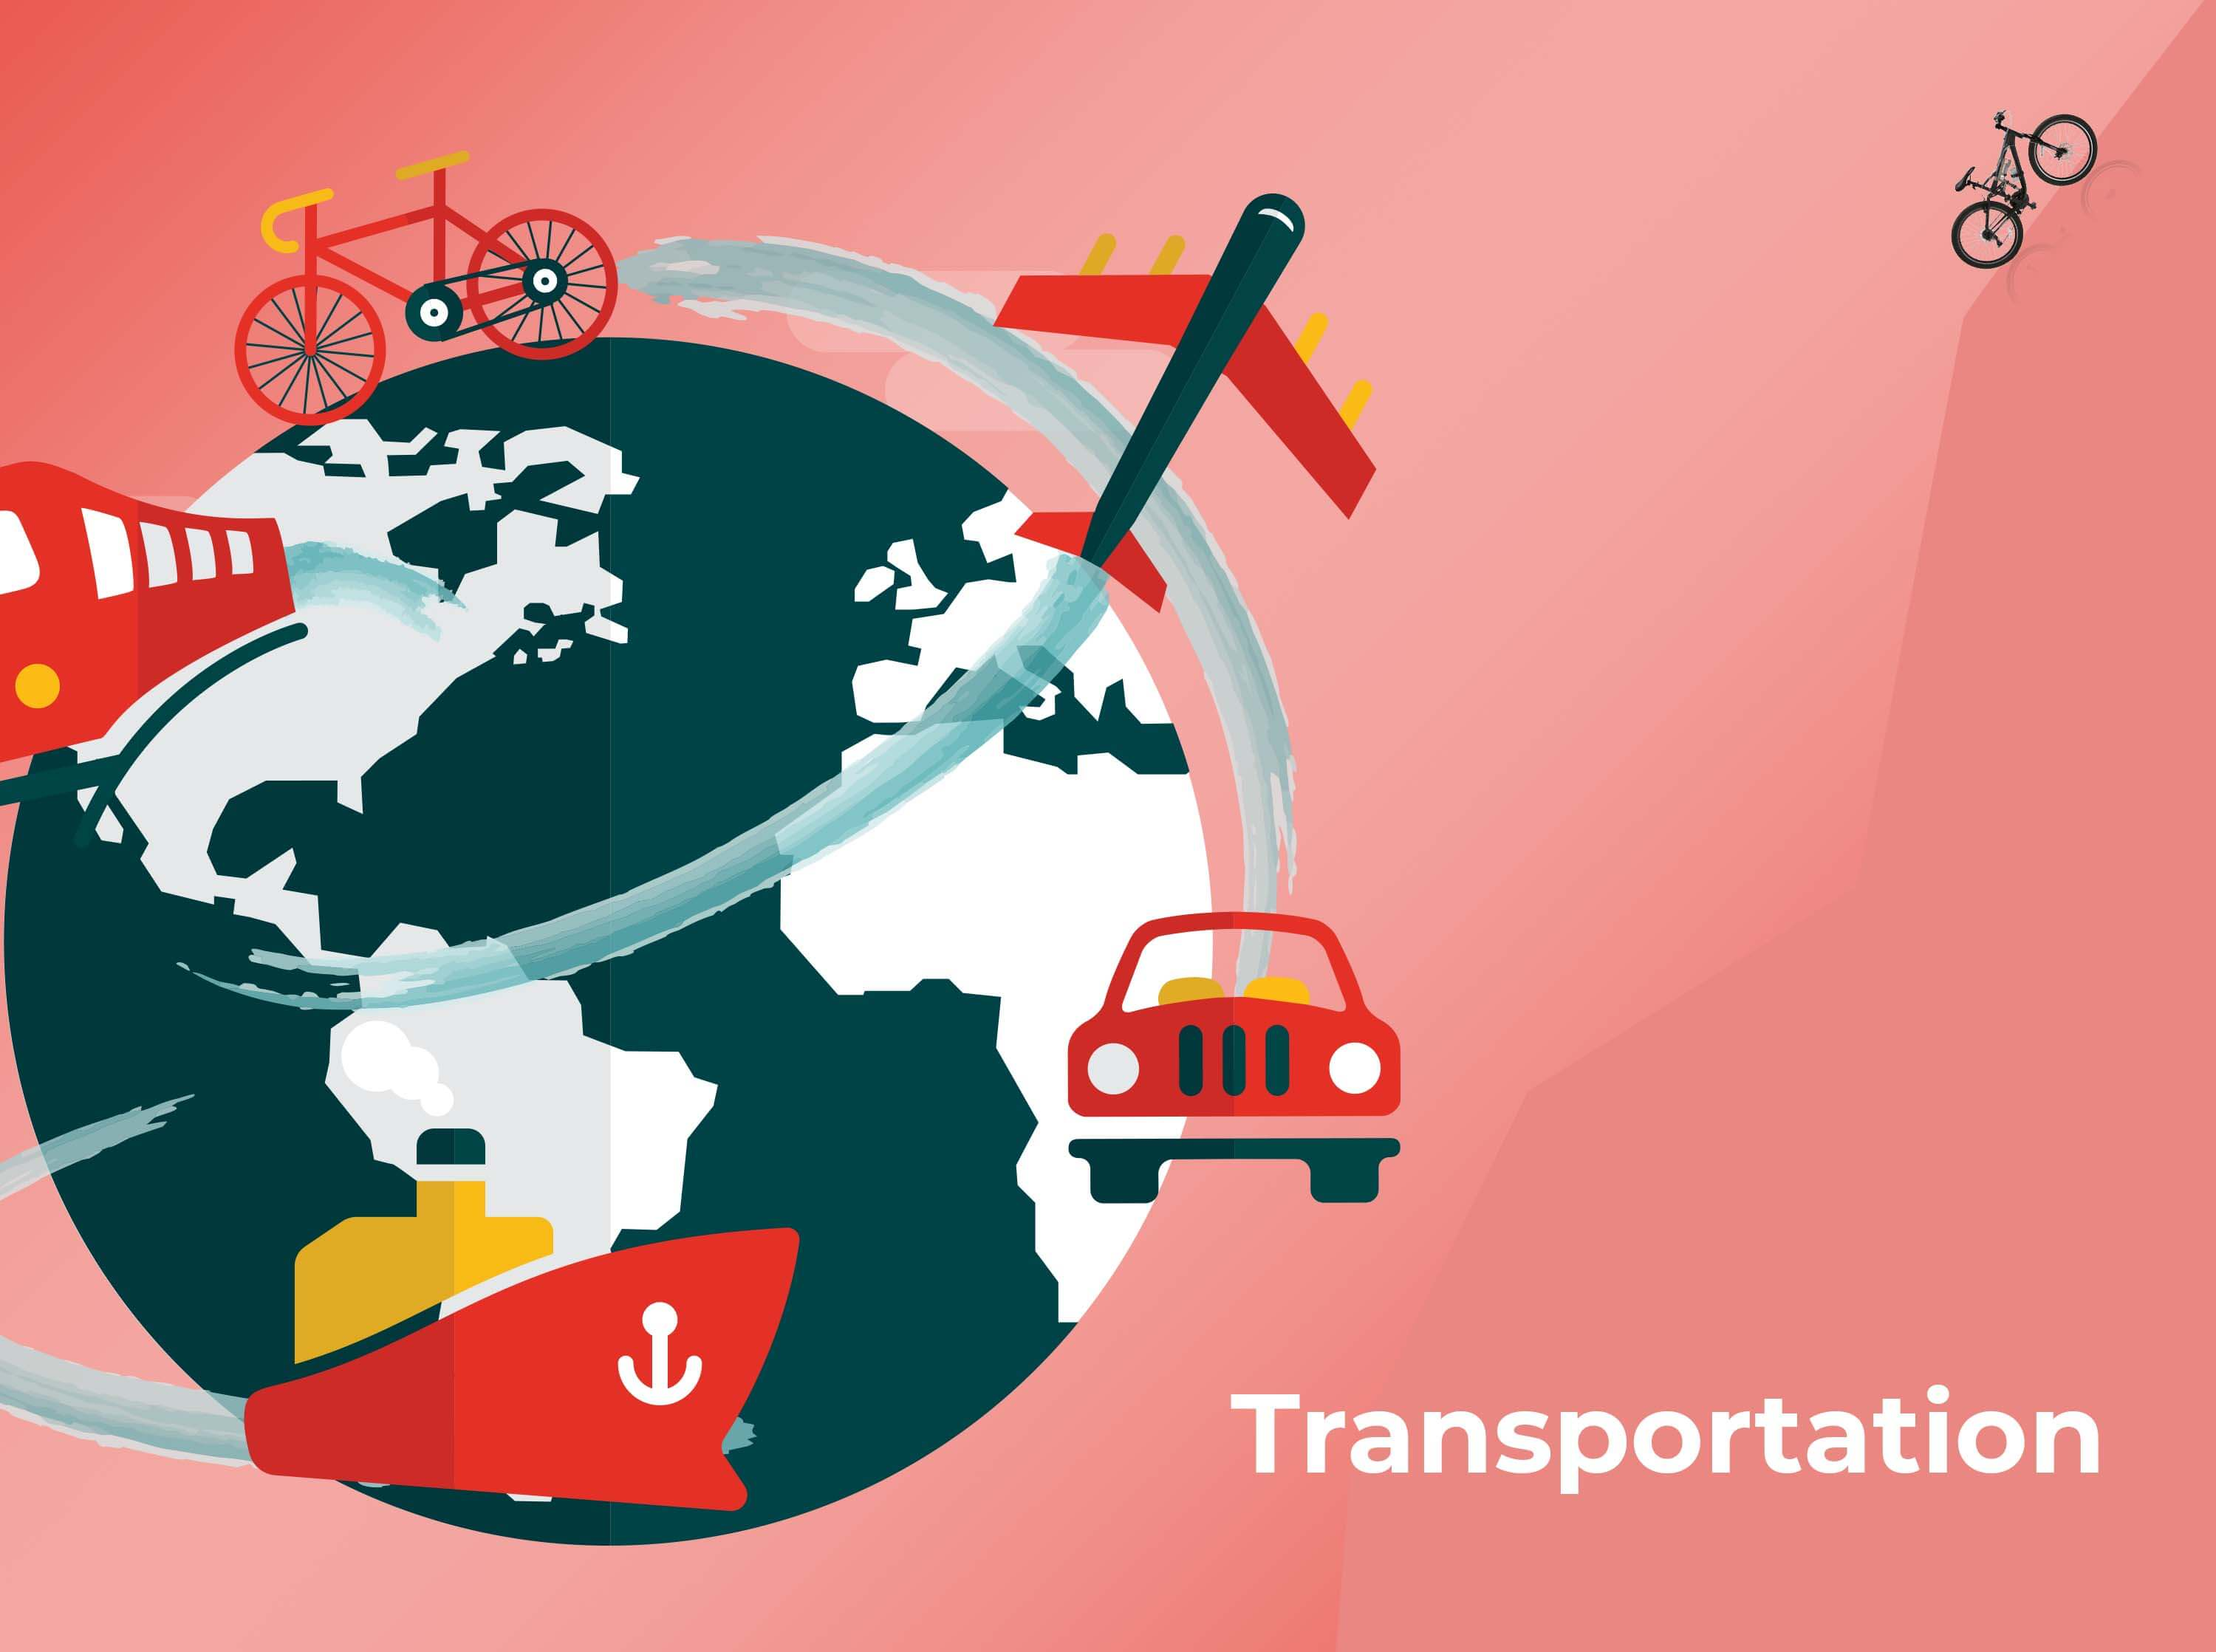 a sketch of globe and there is an aeroplane, bicycle, train, car and a ship on it